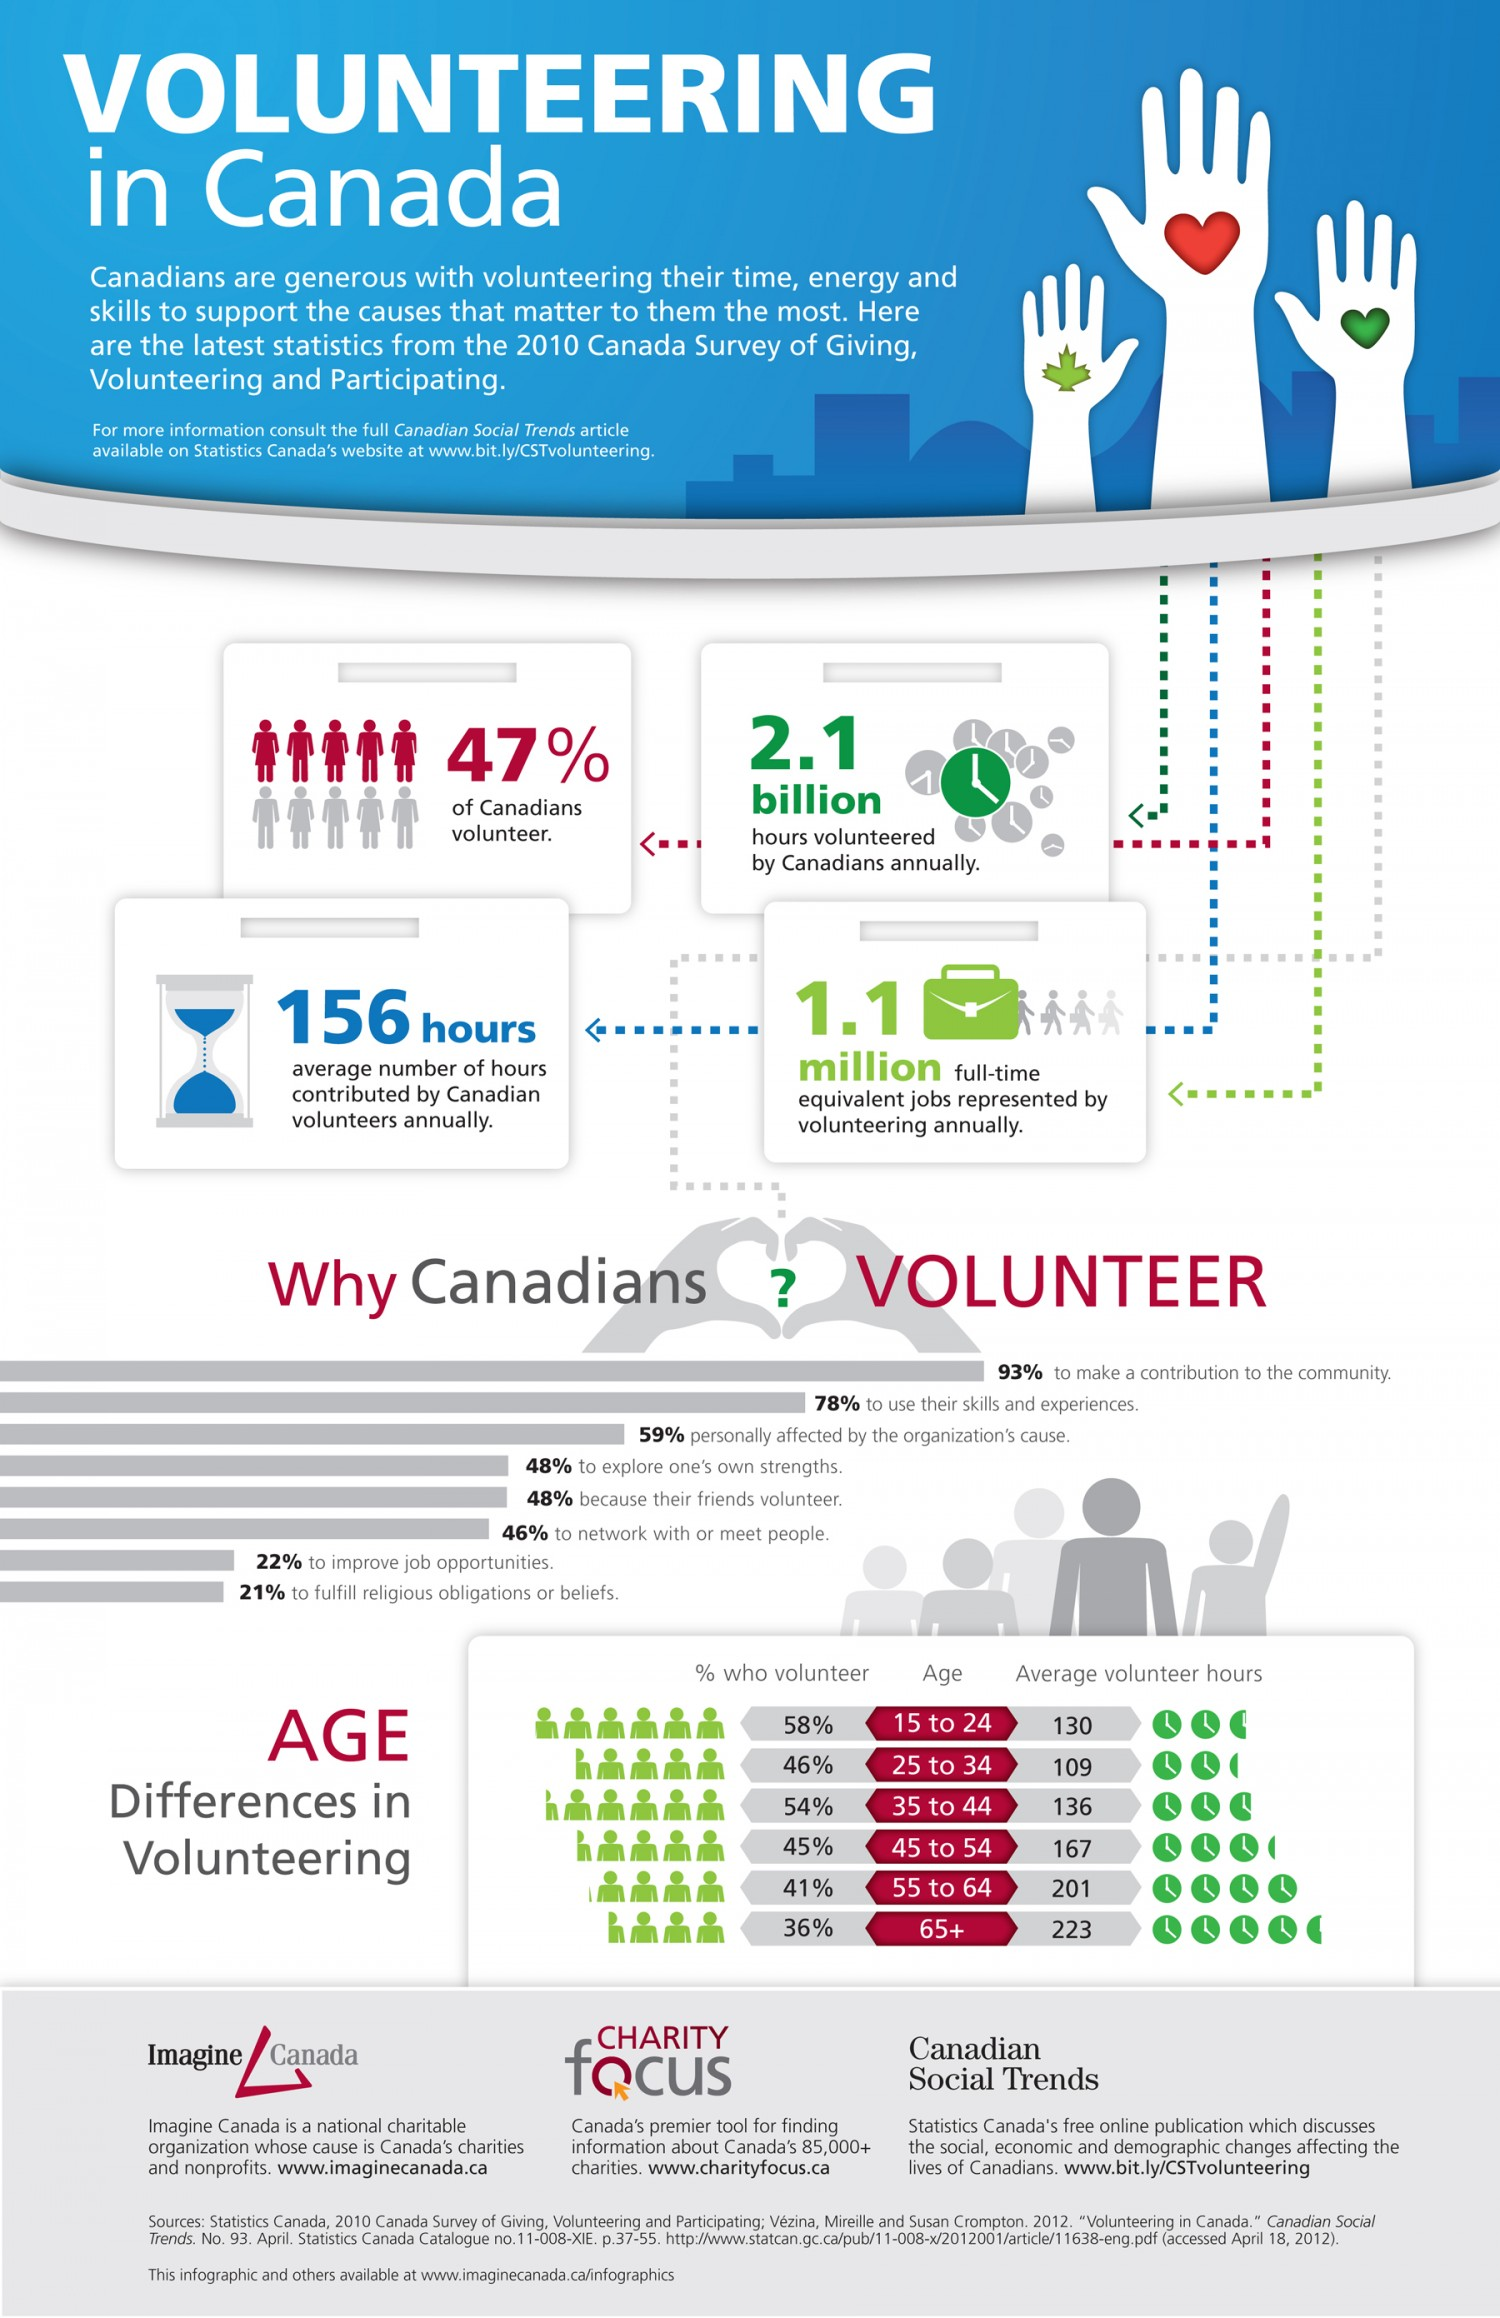 12. Volunteering in Canada